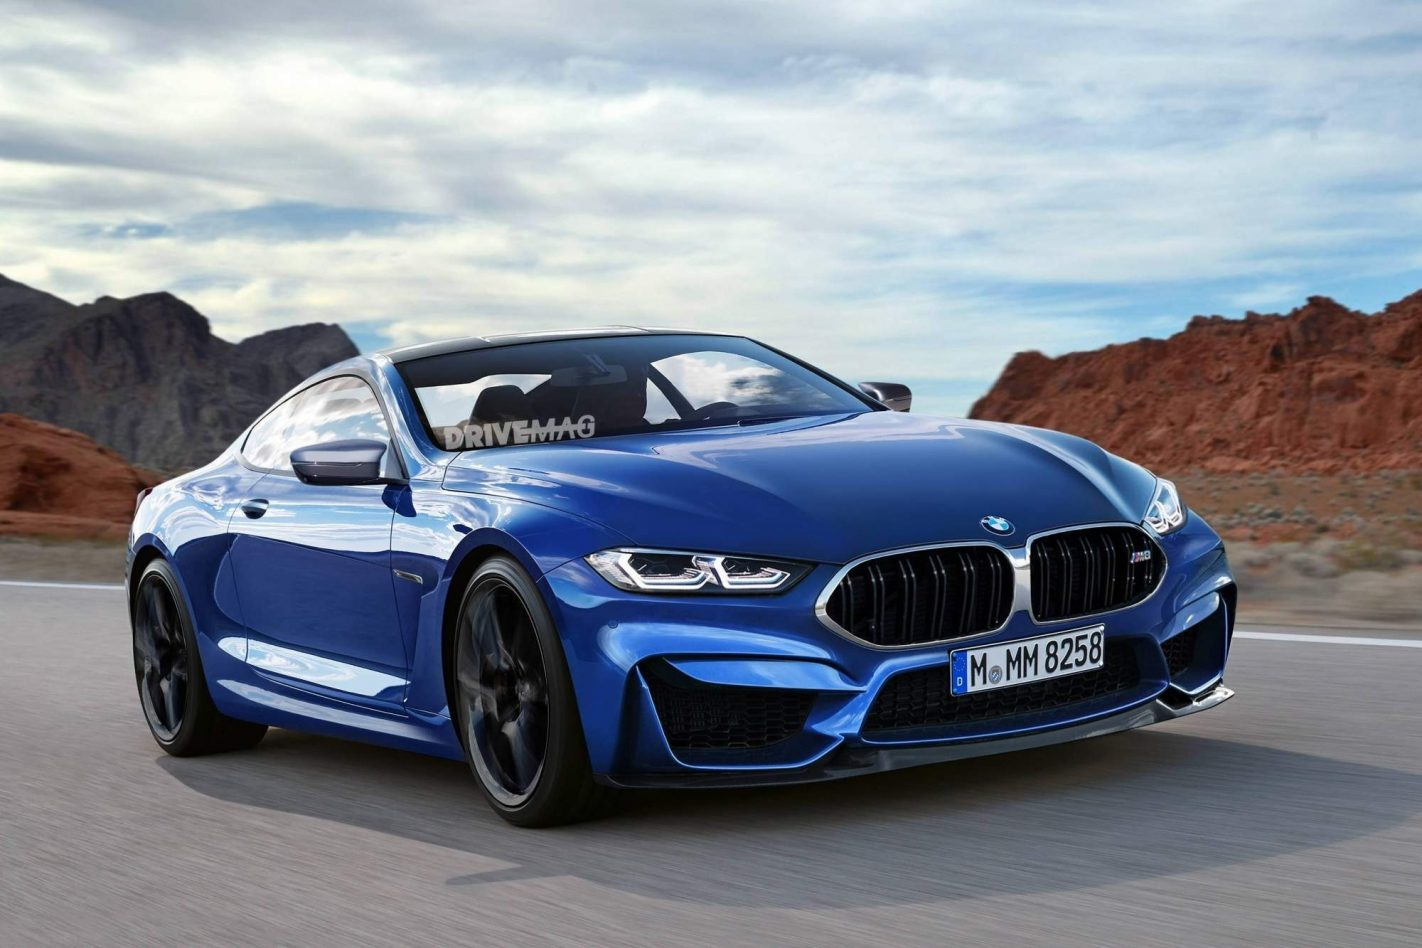 38 The Best 2019 BMW M8 Configurations